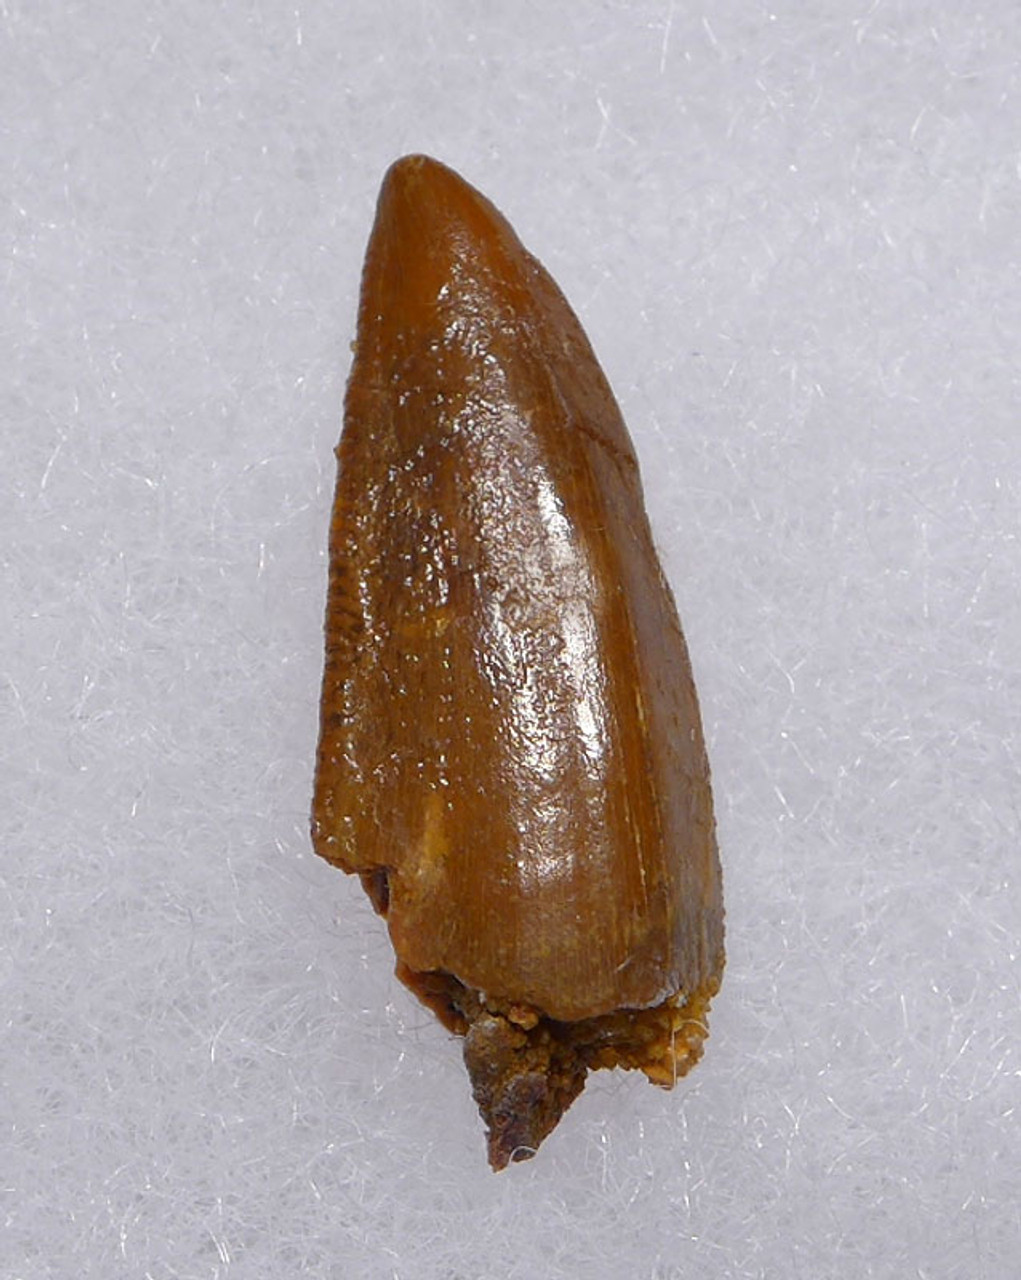 MAXIMUM SIZE RAPTOR DINOSAUR FOSSIL TOOTH FROM A LARGE DROMAEOSAUR  *DT6-337